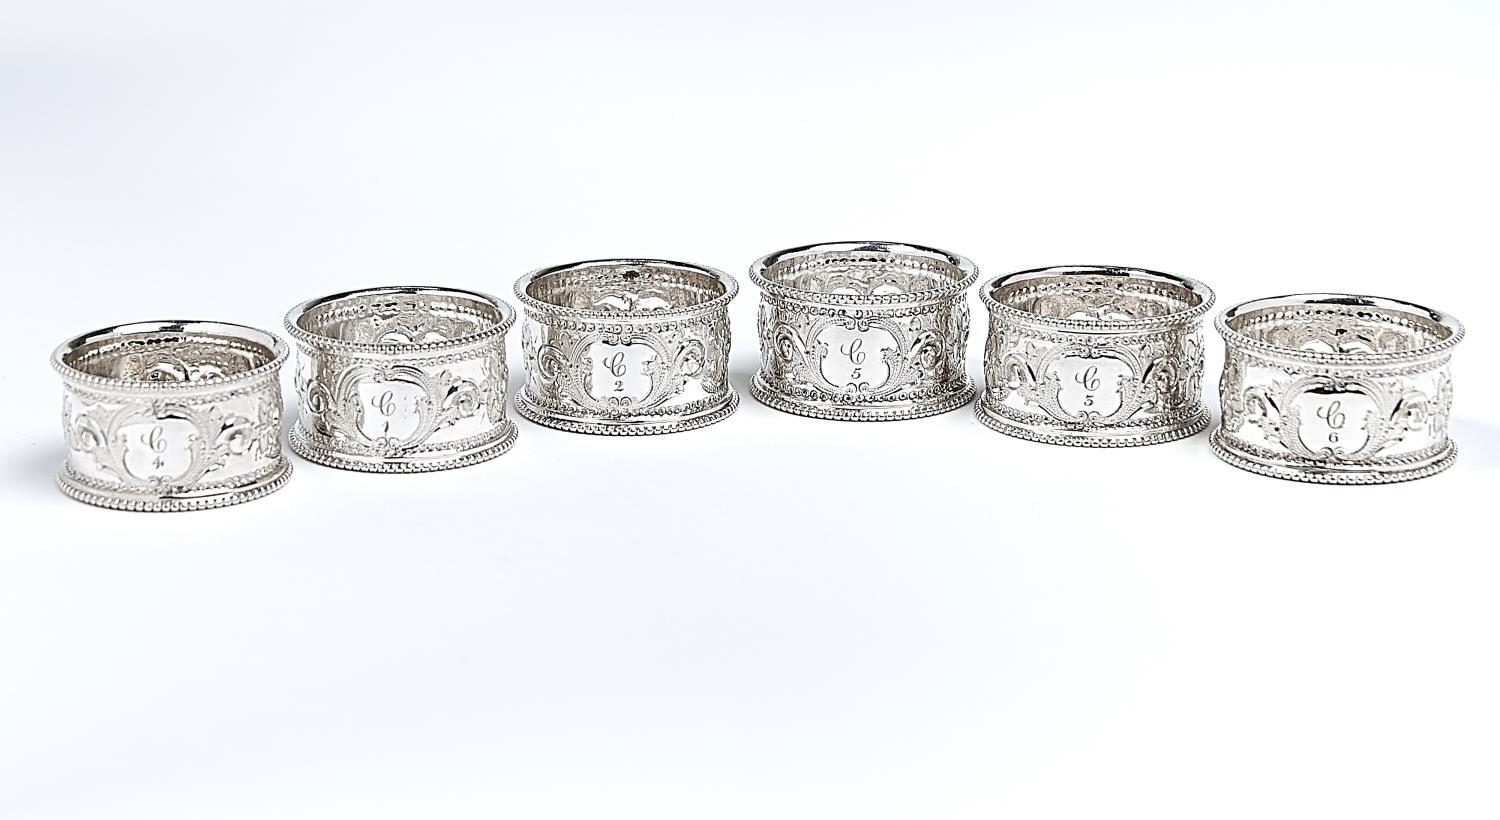 A SET OF SIX VICTORIAN EPNS BEADED NAPKIN RINGS, C1870, EMBOSSED WITH FOLIAGE, NUMBERED 1-6, PLUSH